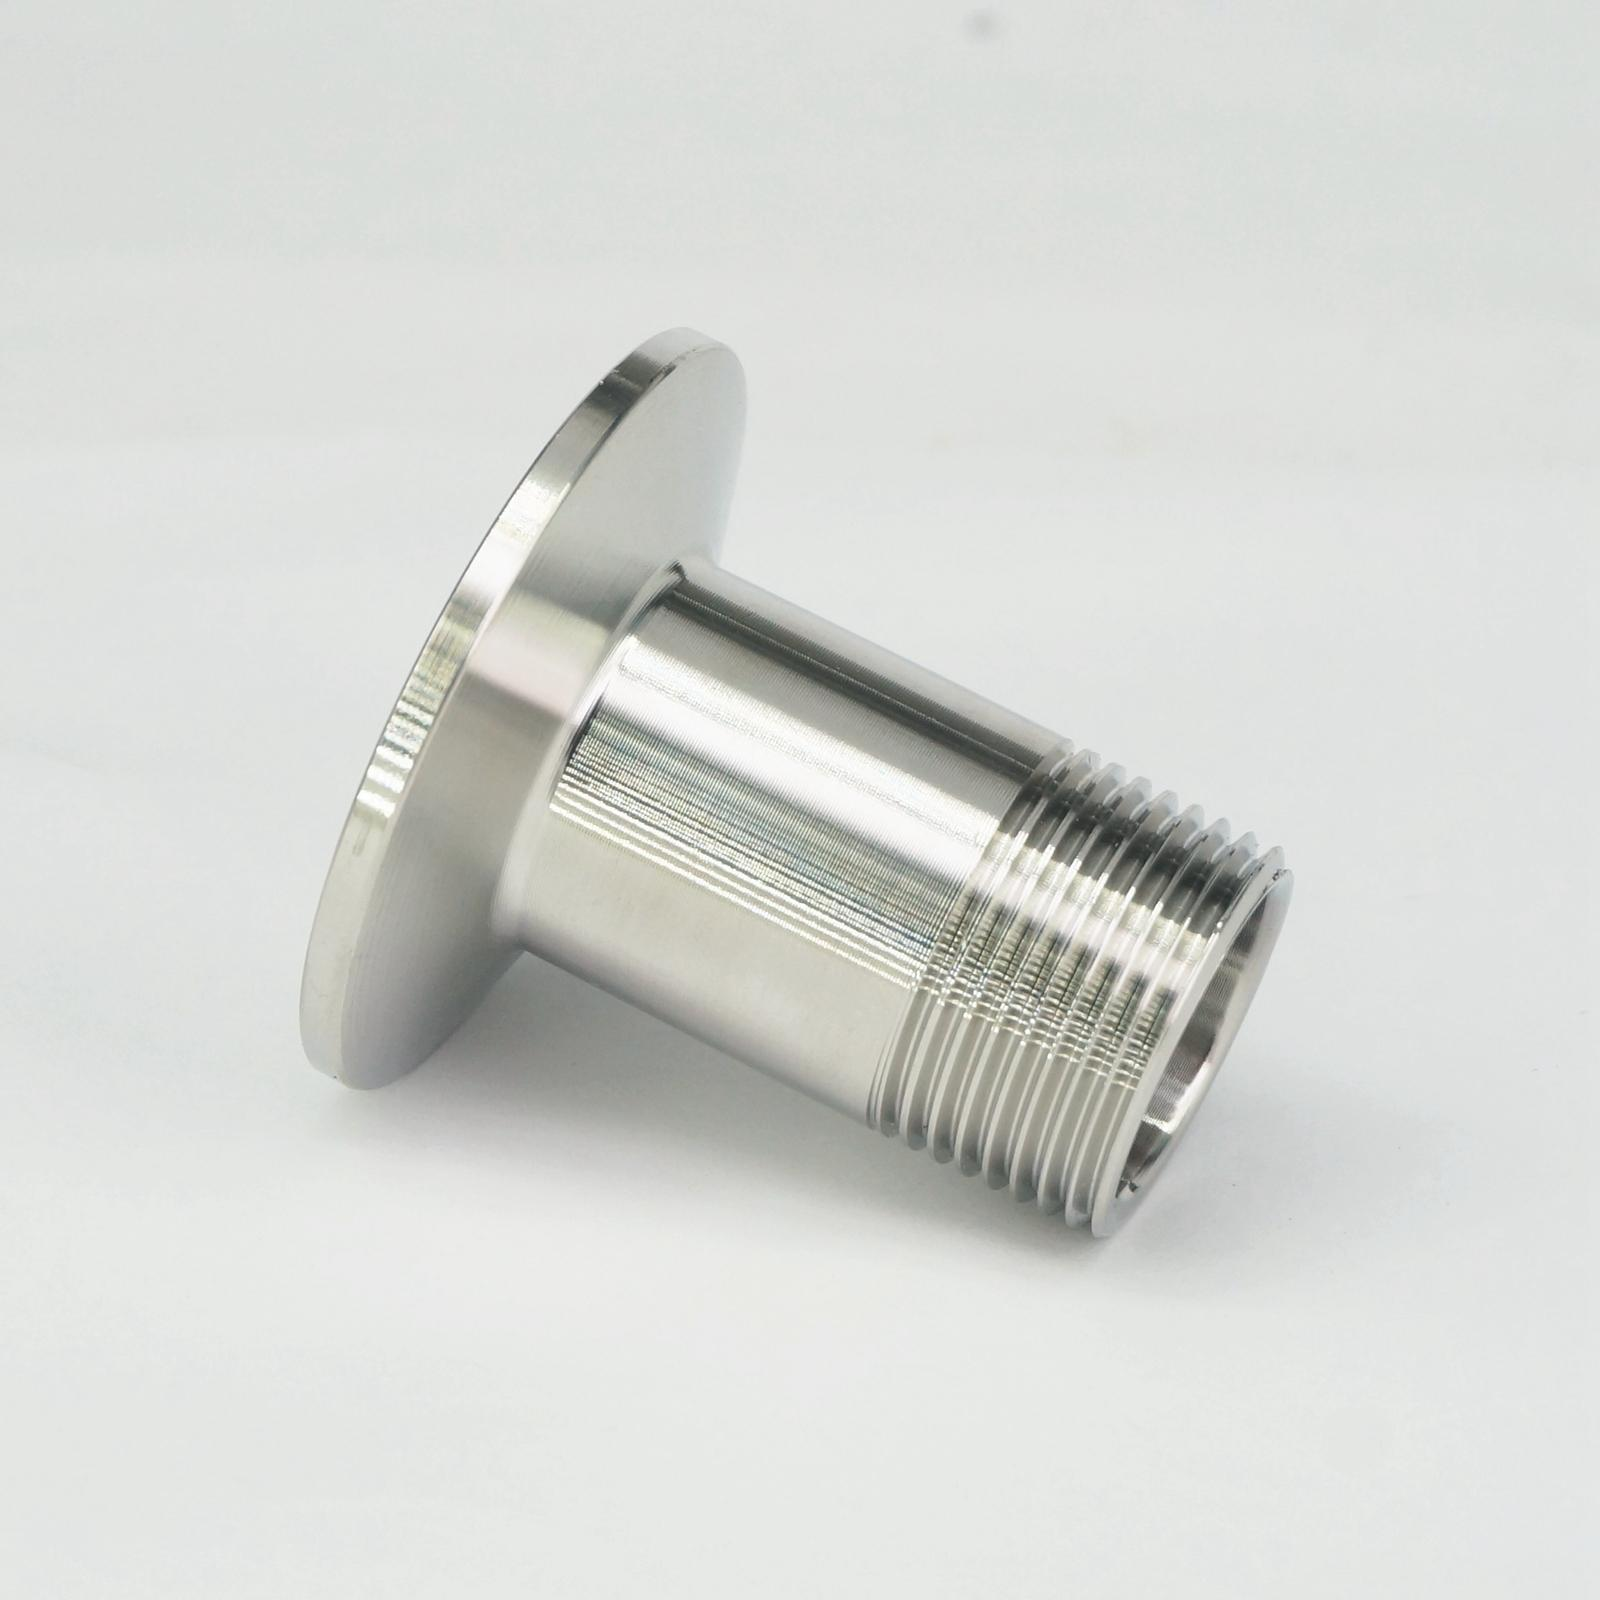 3/4 BSP Male x 1.5 Tri Clamp 304 Stainless Steel Pipe Fitting Connector For Homebrew